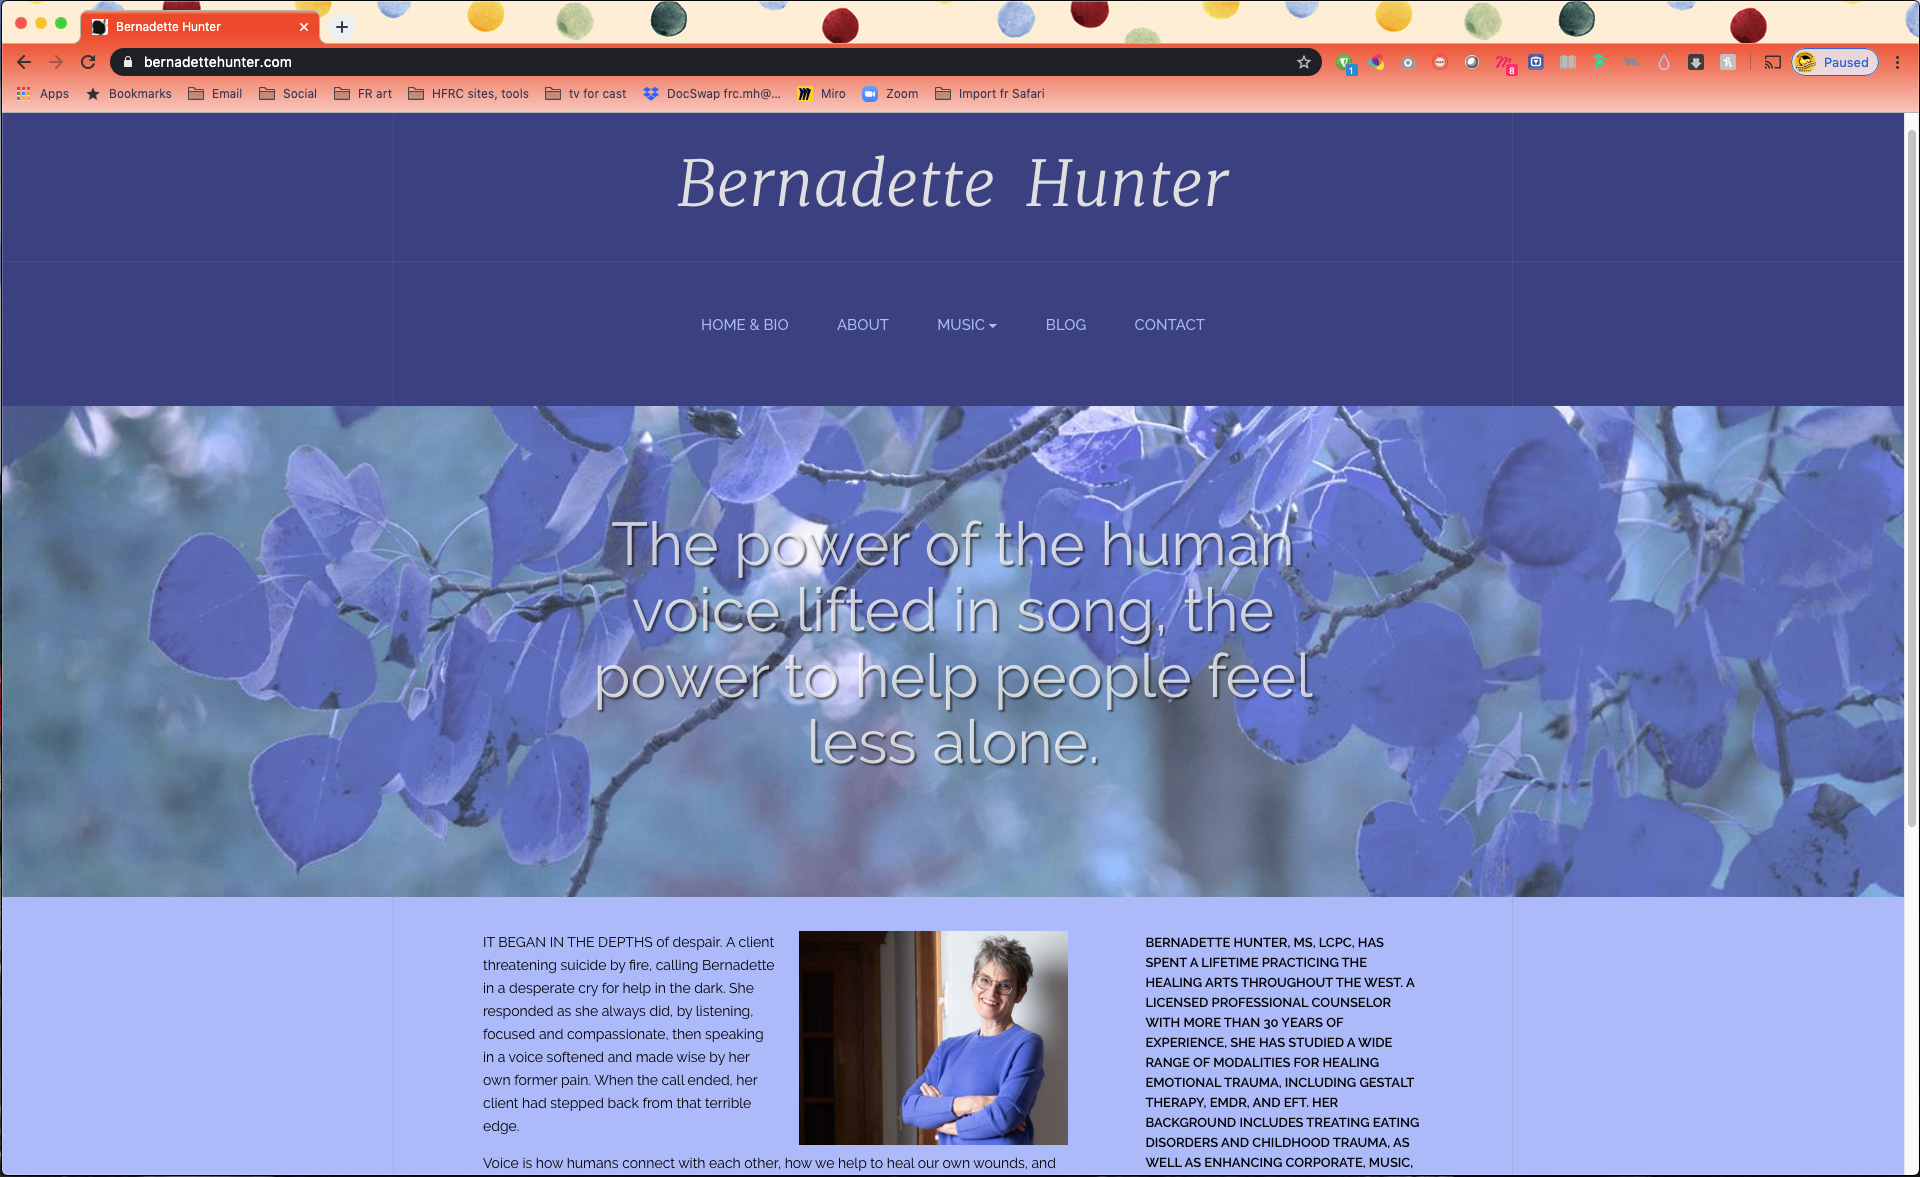 Bernadette Hunter website home page